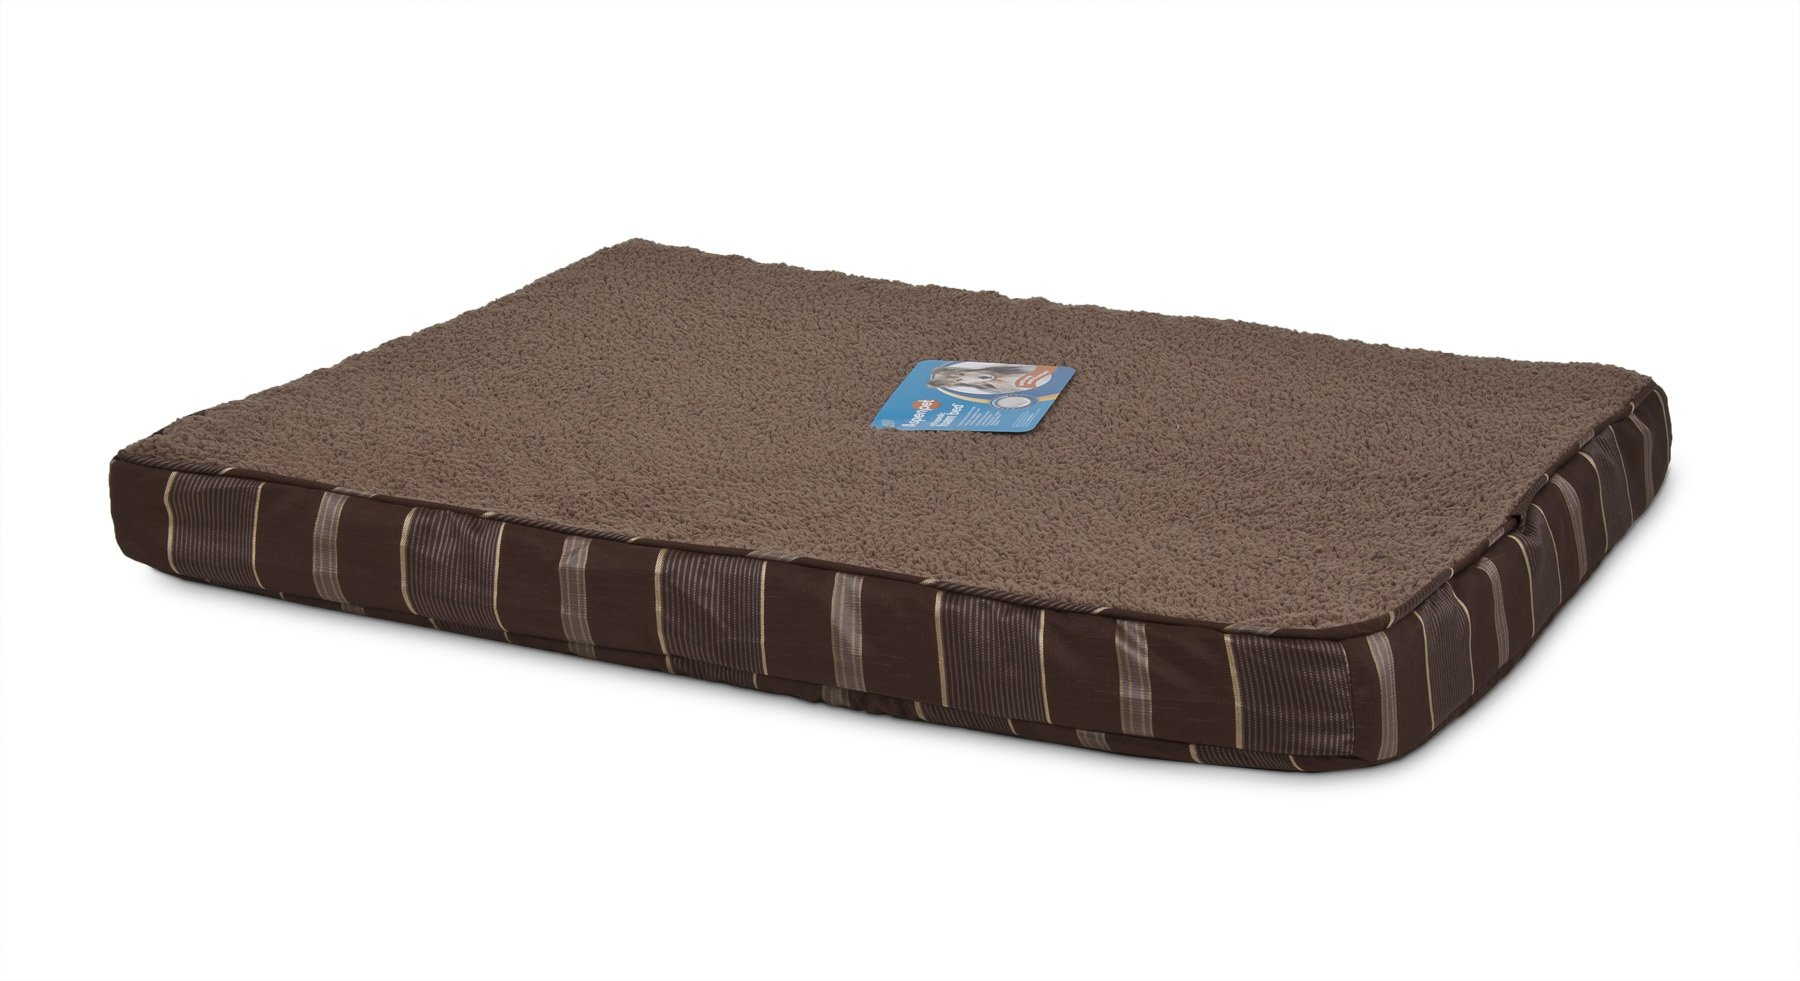 Petmate Deluxe Orthopedic Dog Bed 27'' L x 36'' W x 3.5'' H Assorted Colors